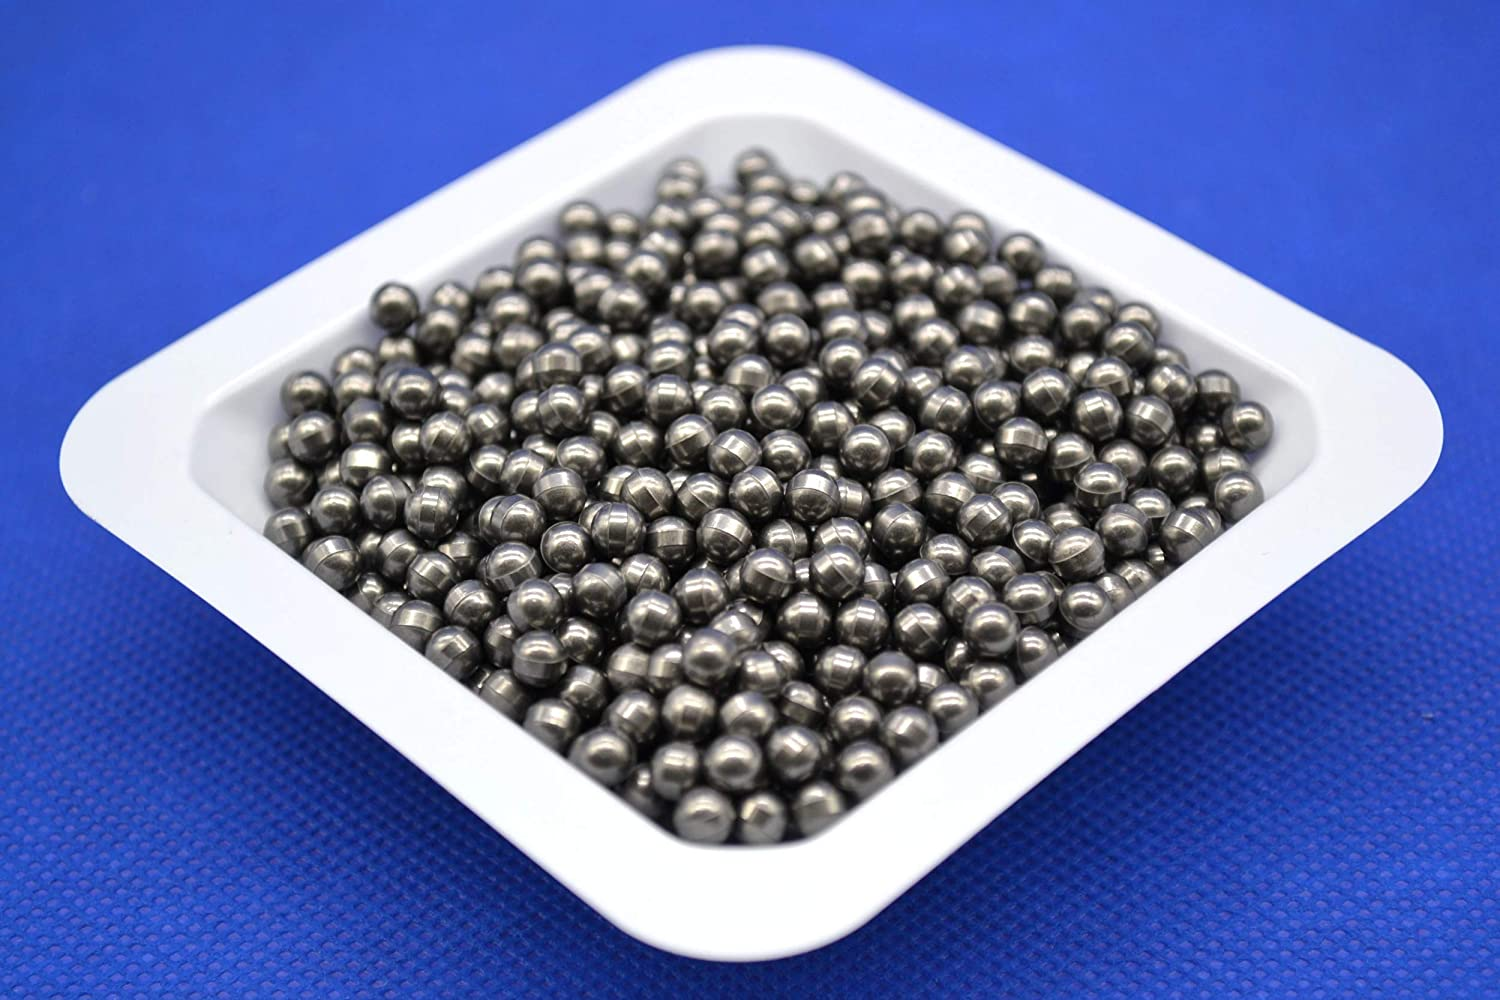 4 mm Tungsten Carbide (WC-Co) Balls for Grinding and Milling, 1kg